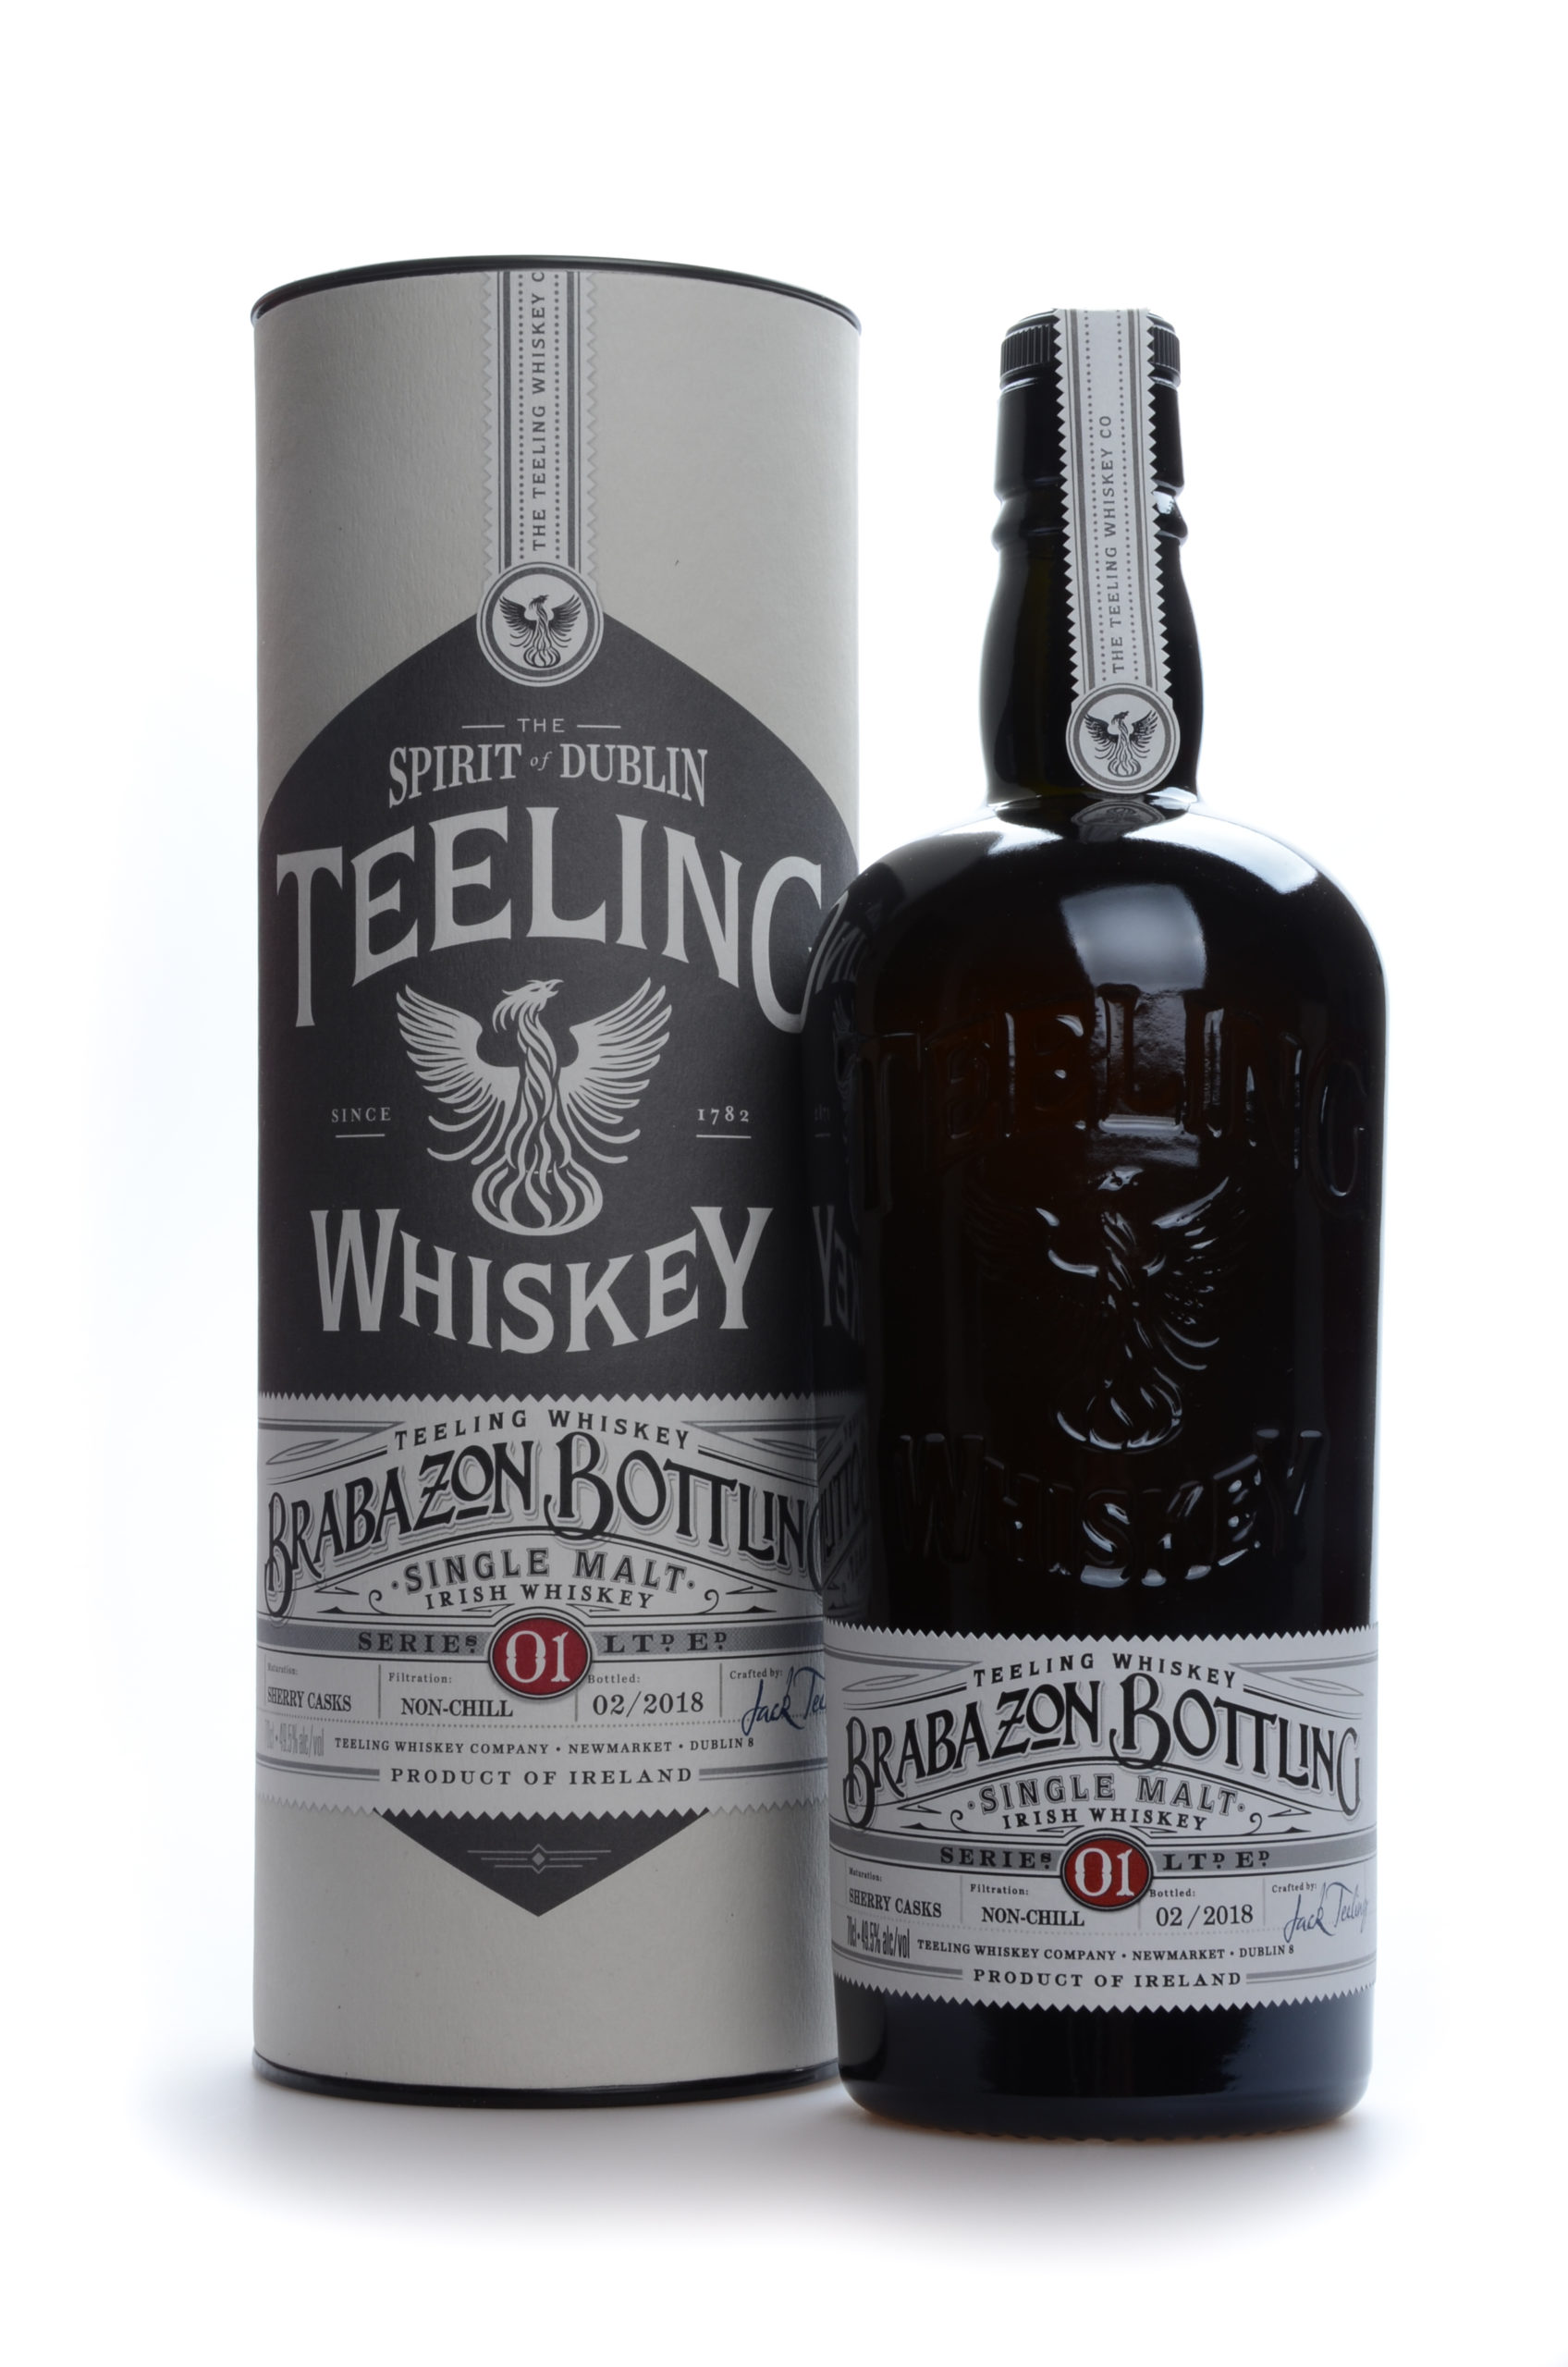 teeling Brabazon Bottling serie 1 single malt